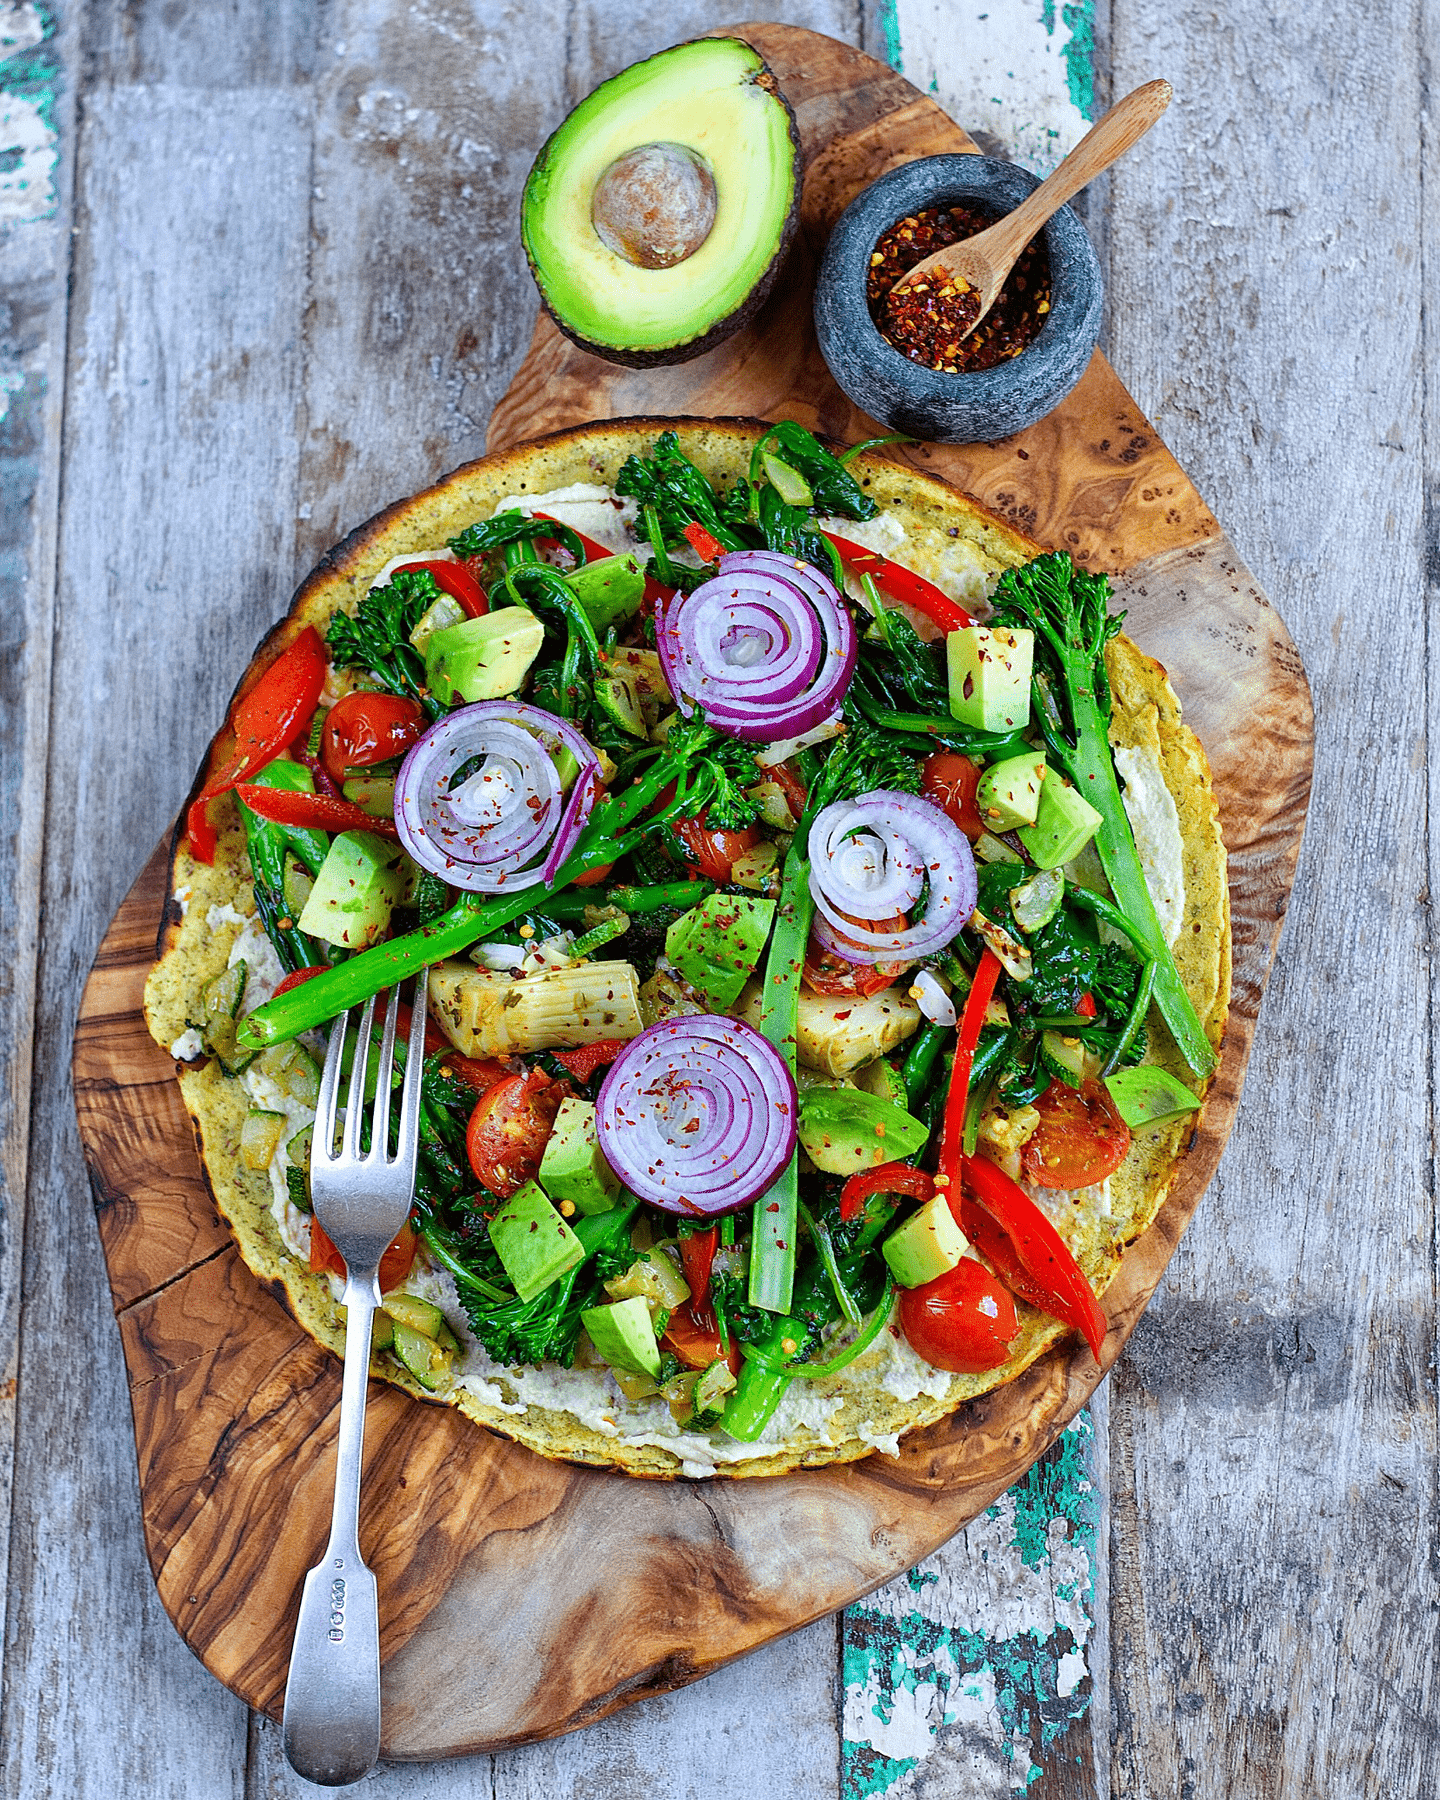 Healthy One-Pan Wrapizza 1